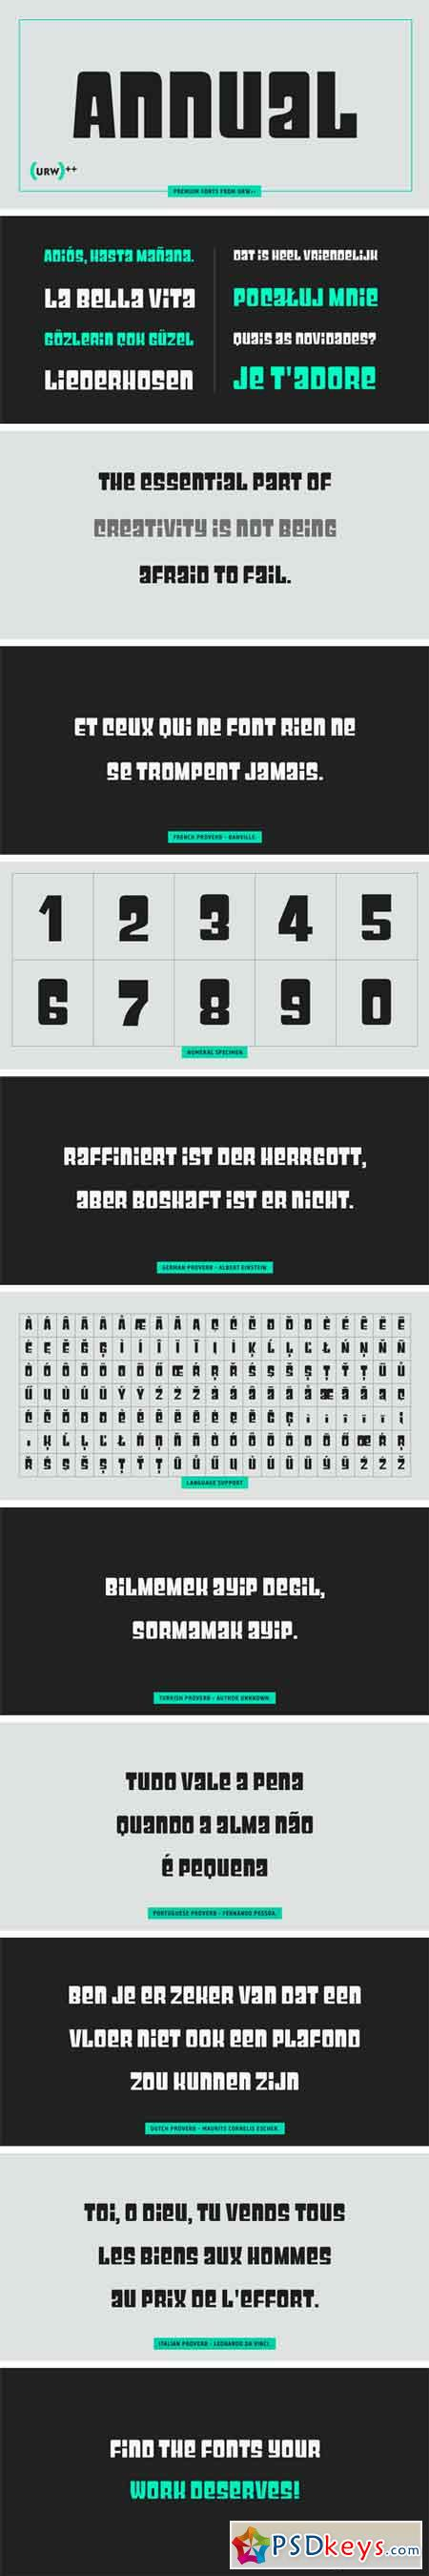 Font » page 391 » Free Download Photoshop Vector Stock image Via